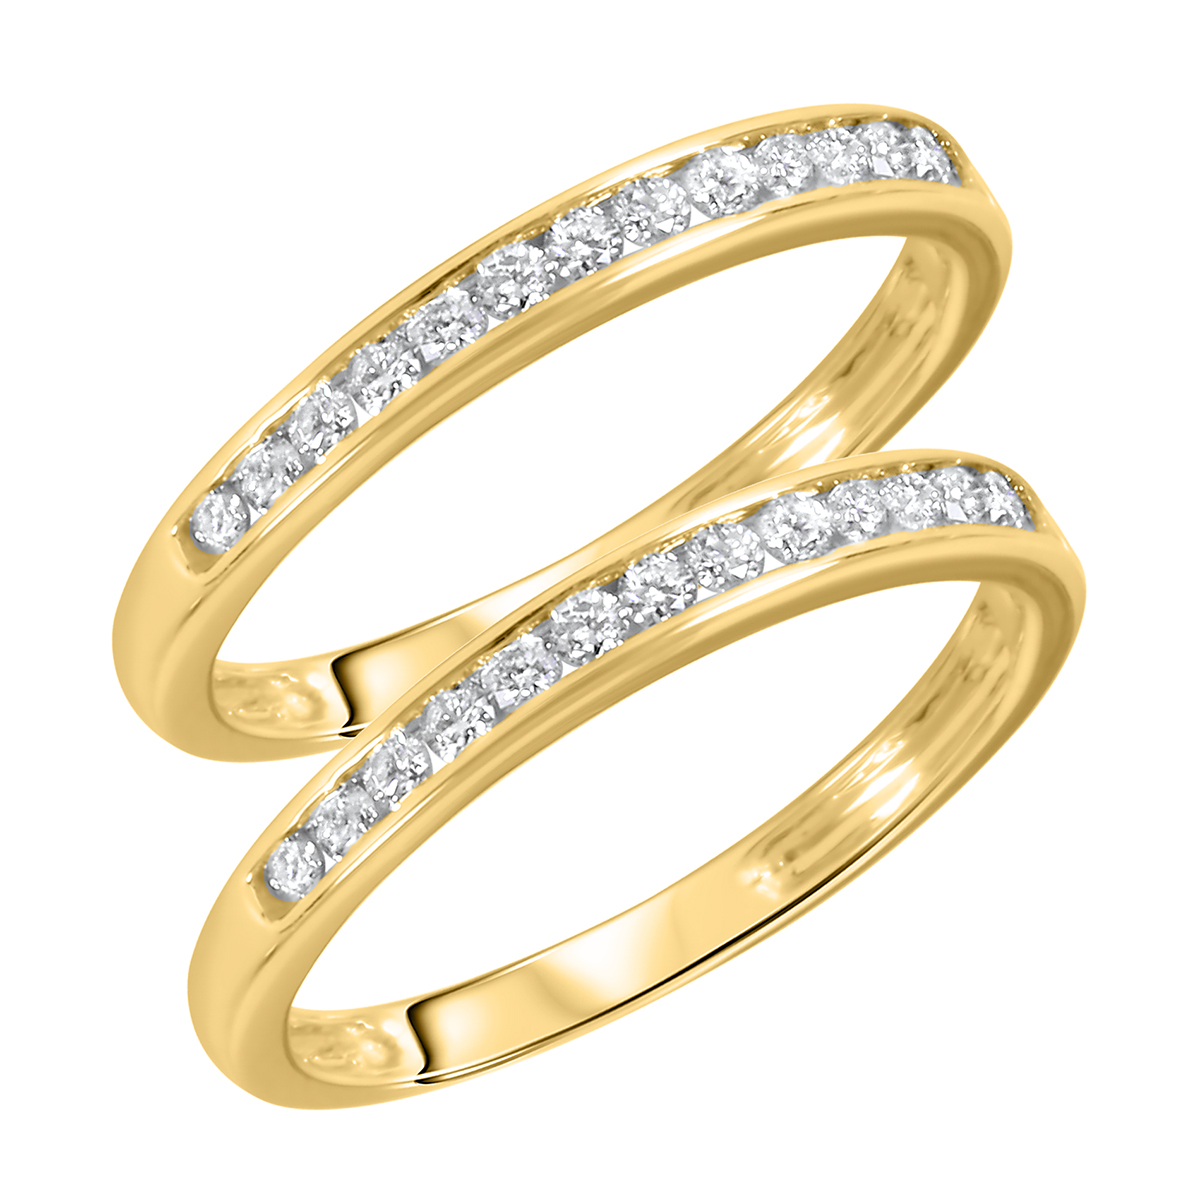 1/2 CT. T.W. Round Cut Ladies Same Sex Wedding Band Set 14K Yellow Gold